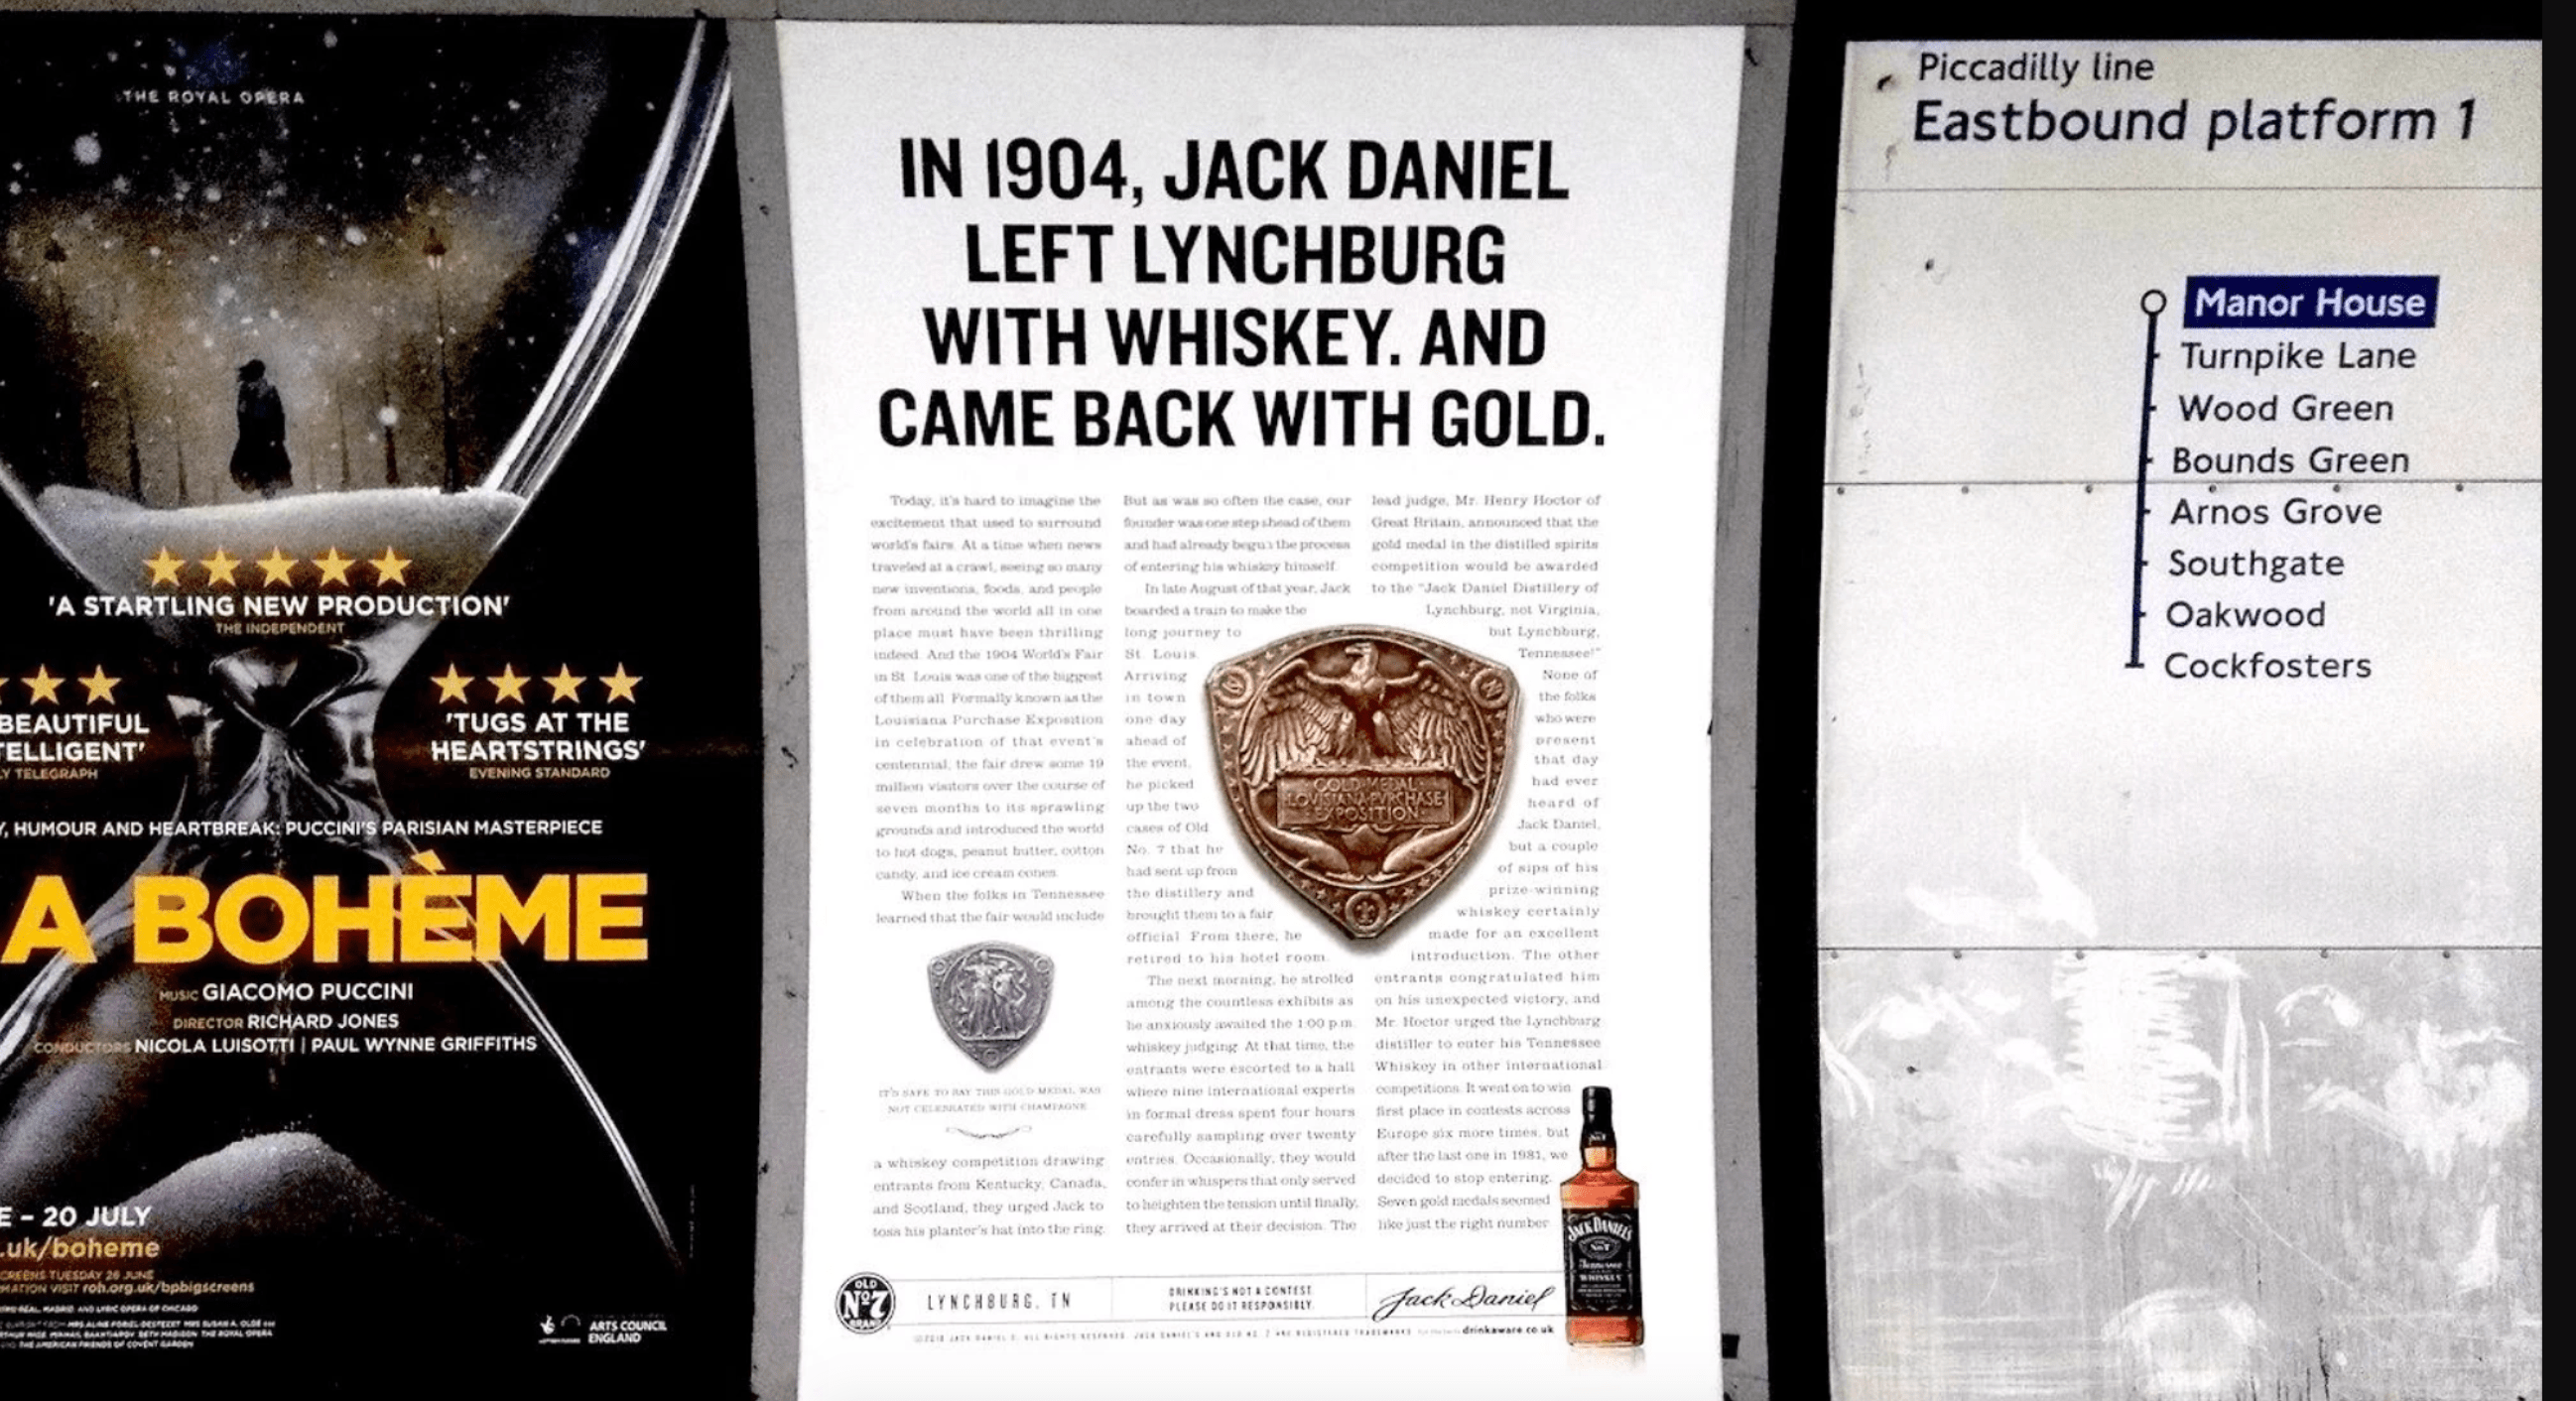 An image showing a long form advert on the London Underground by Jack Daniels